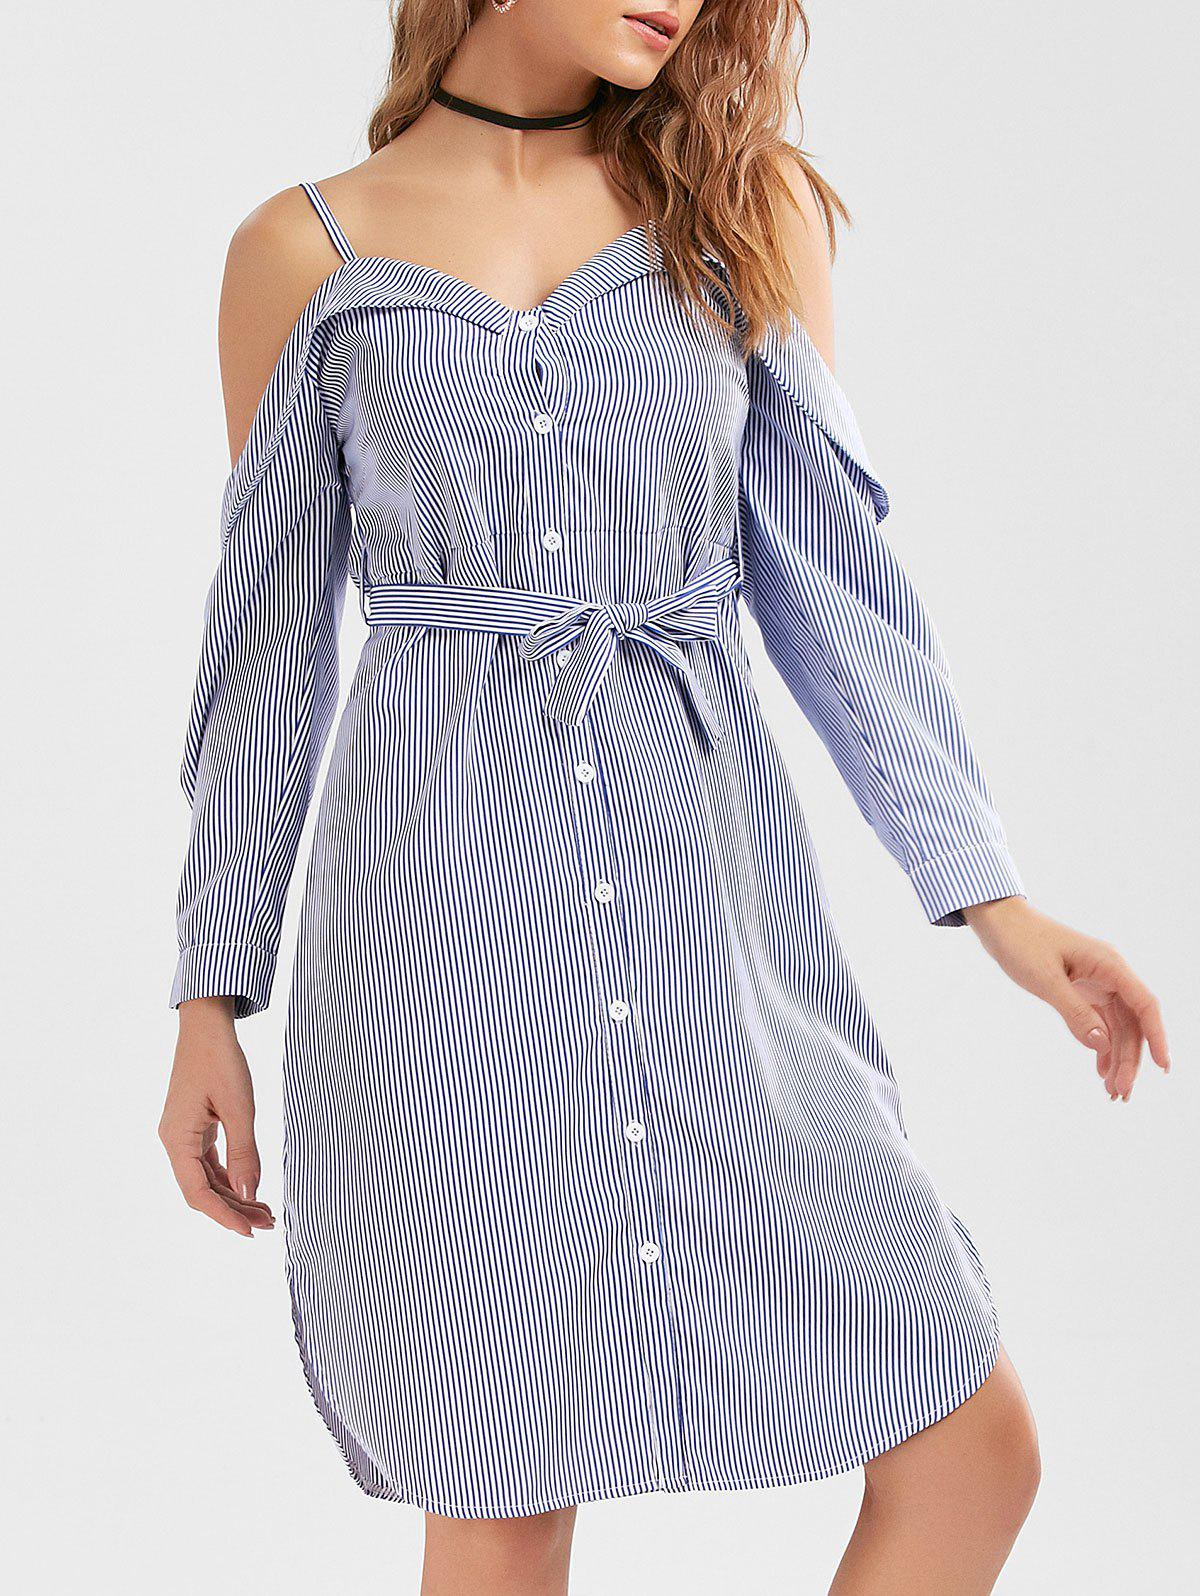 394e9307762a69 2019 Button Up Belted Striped Cold Shoulder Shirt Dress